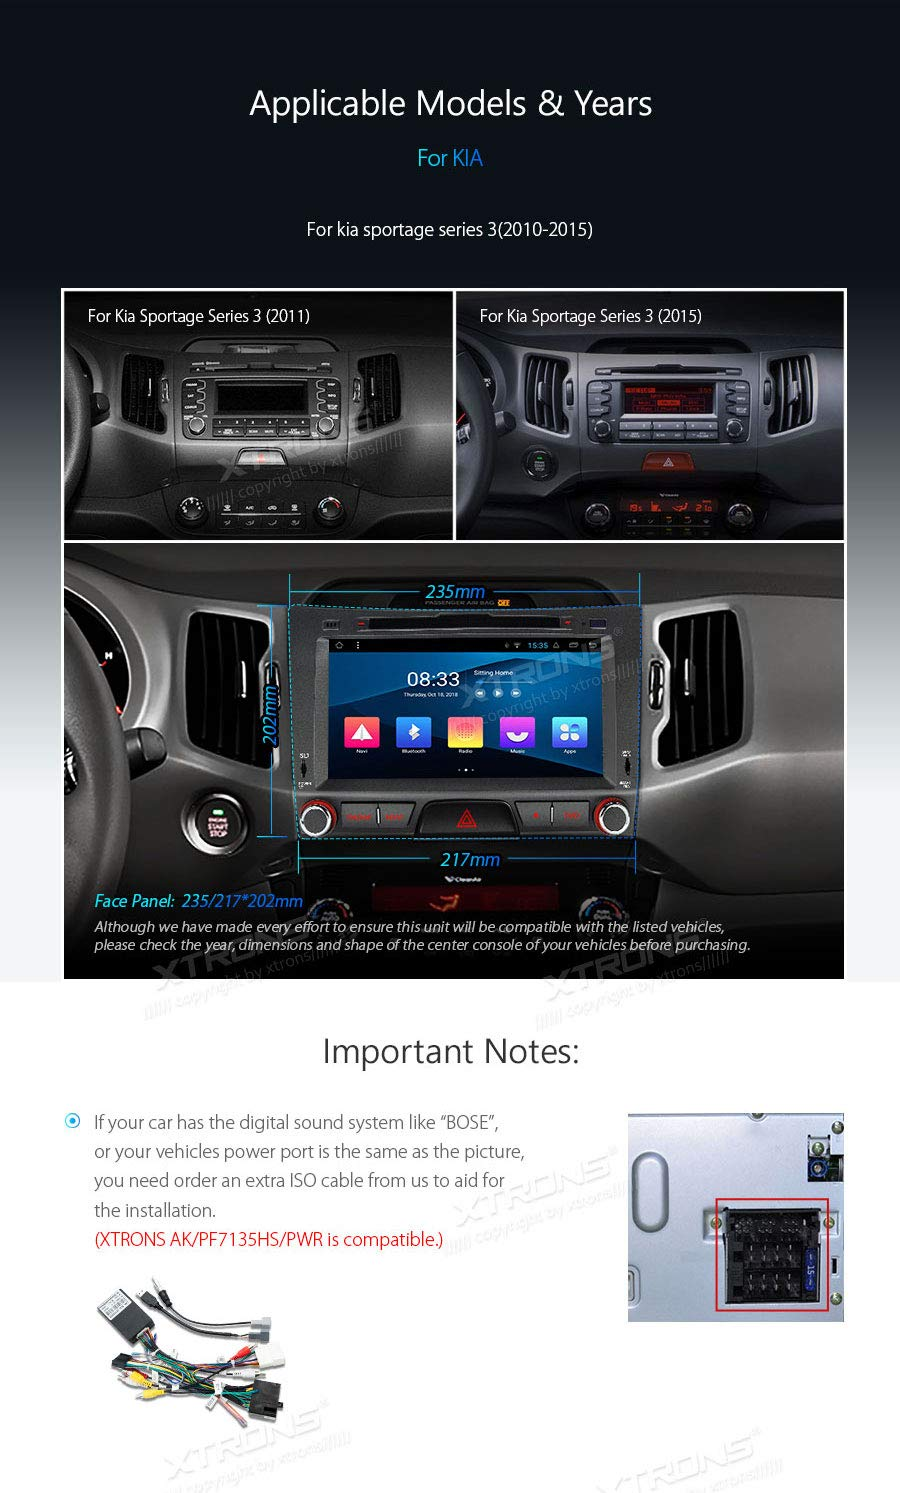 XTRONS-8-Autoradio-mit-Touch-Screen-Android-81-Quad-Core-DVD-Player-Autostereo-untersttzt-3G-4G-Full-RCA-Ausgang-Bluetooth50-Auto-Musik-Streaming-16GB-ROM-DAB-OBD2-FR-KIA